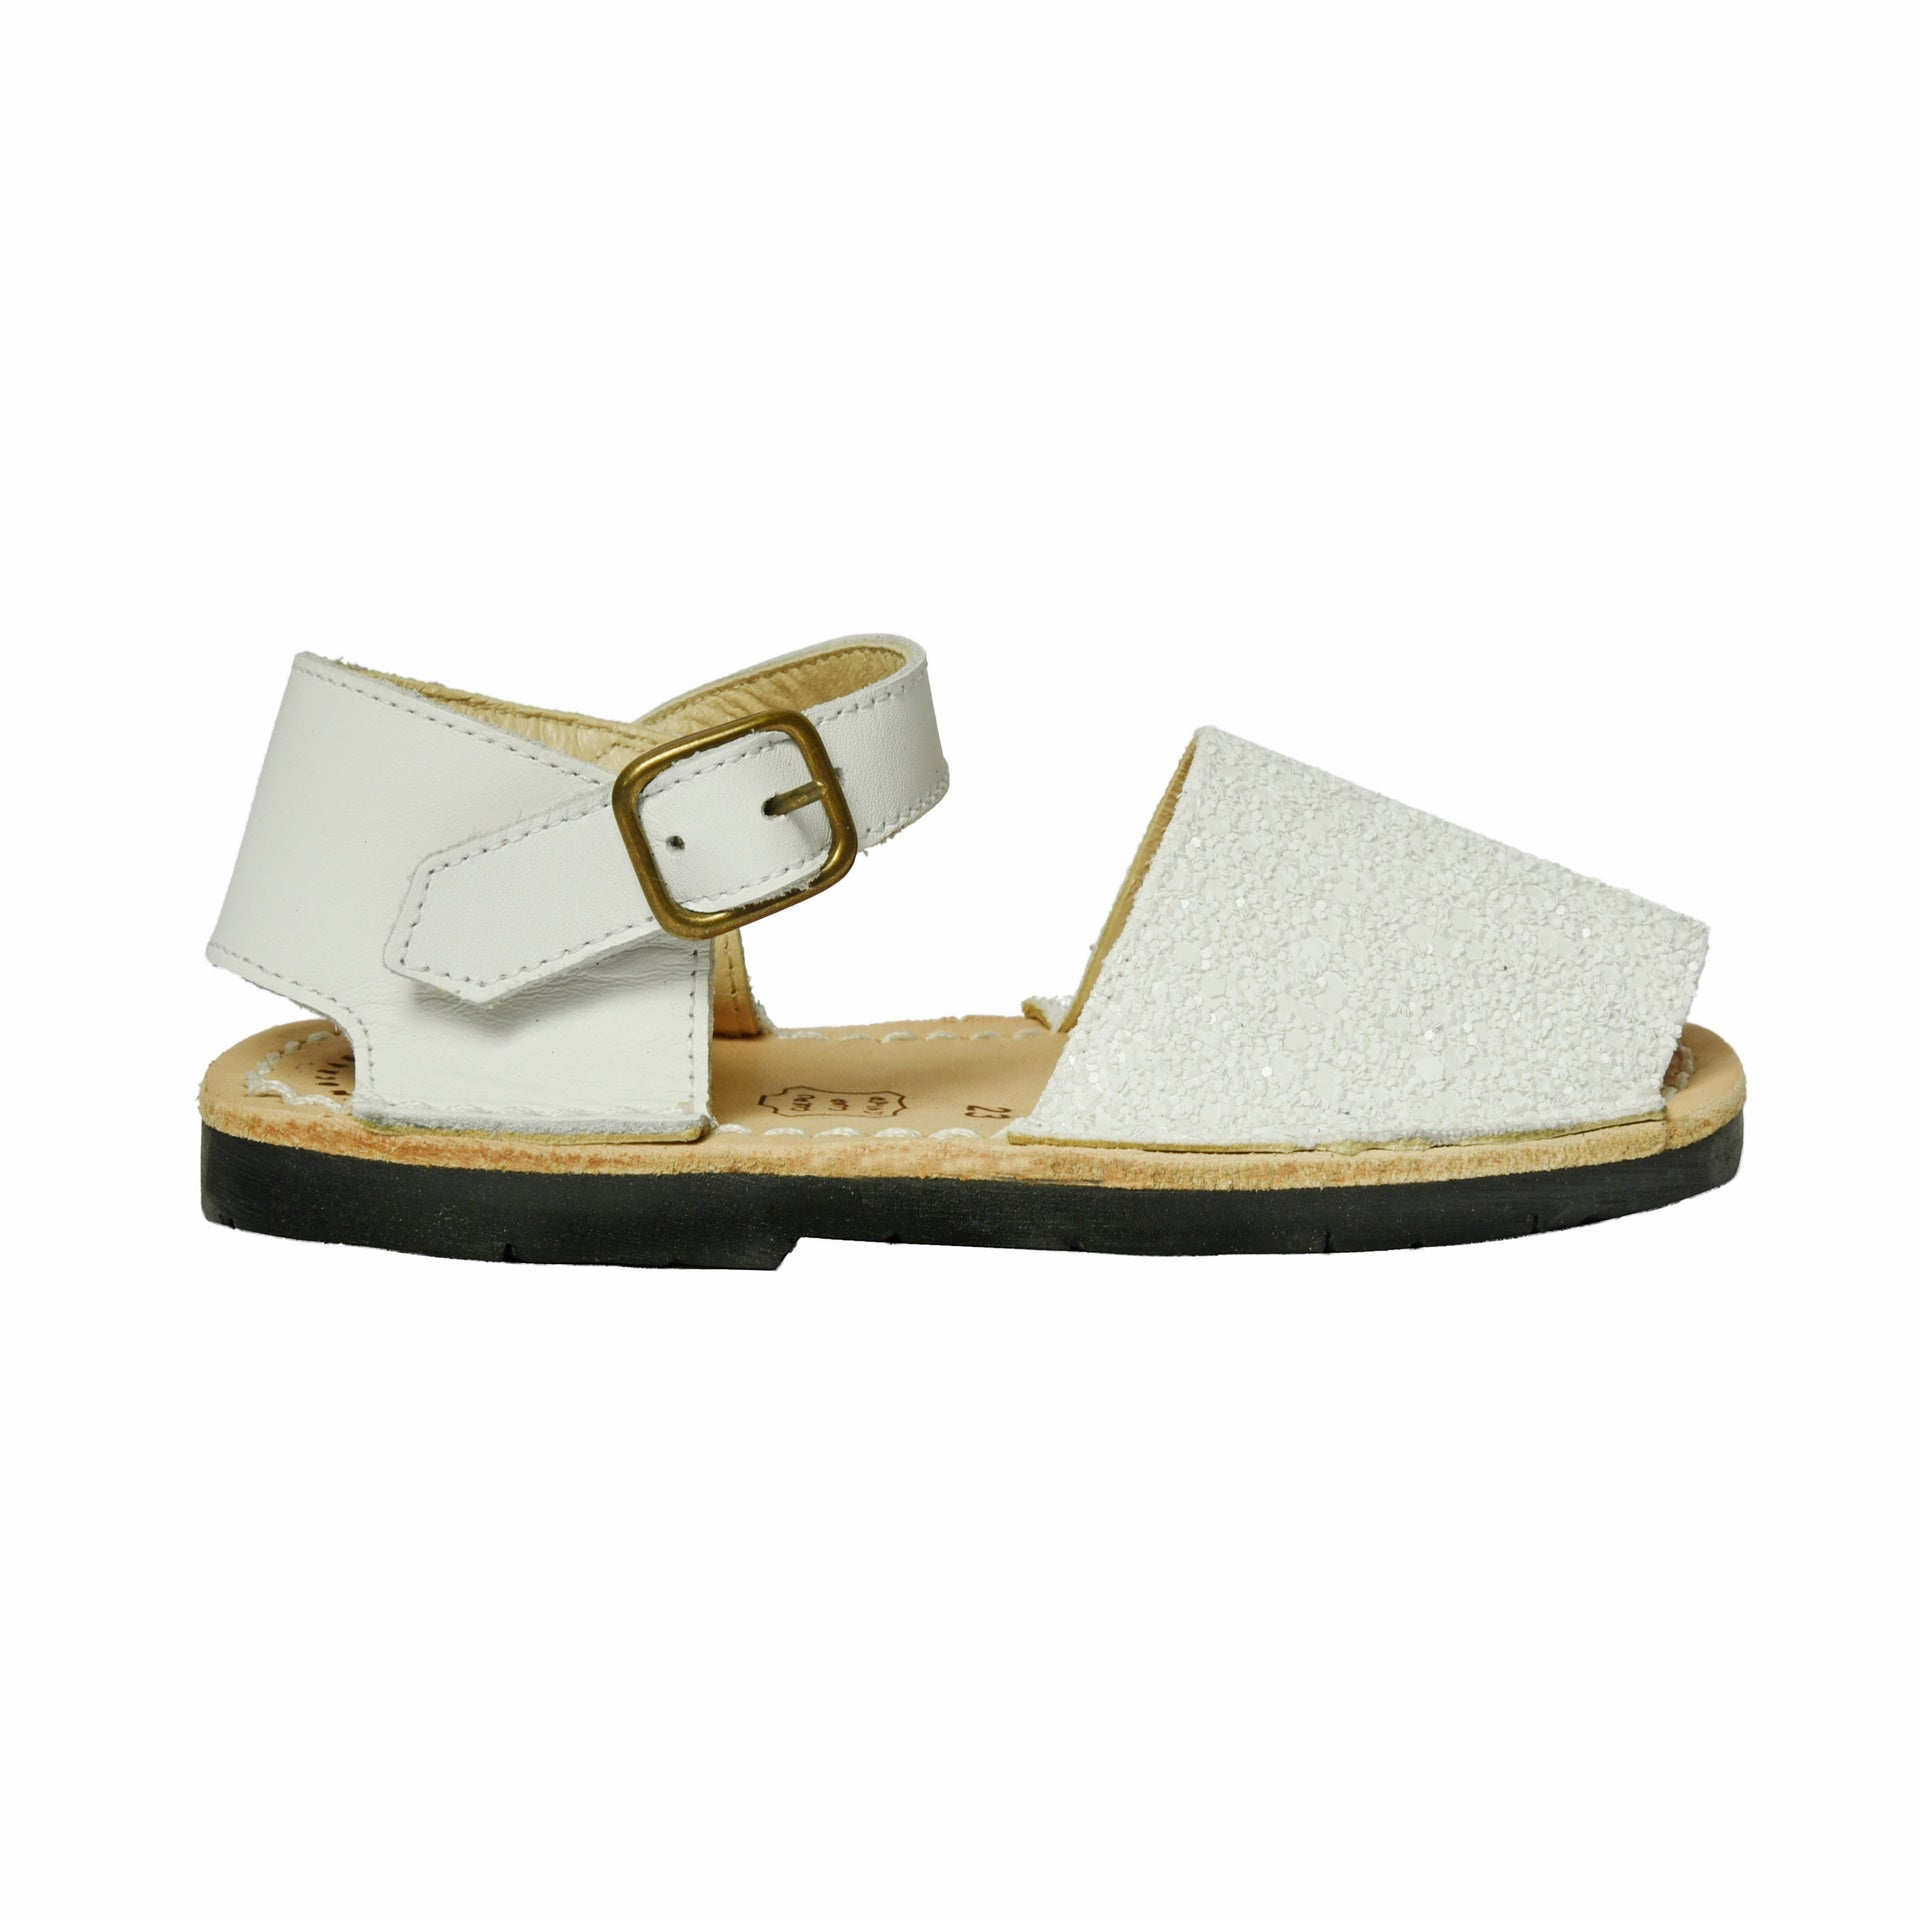 Kid's White Glitter Mibo Avarca Sandals with Buckle Strap